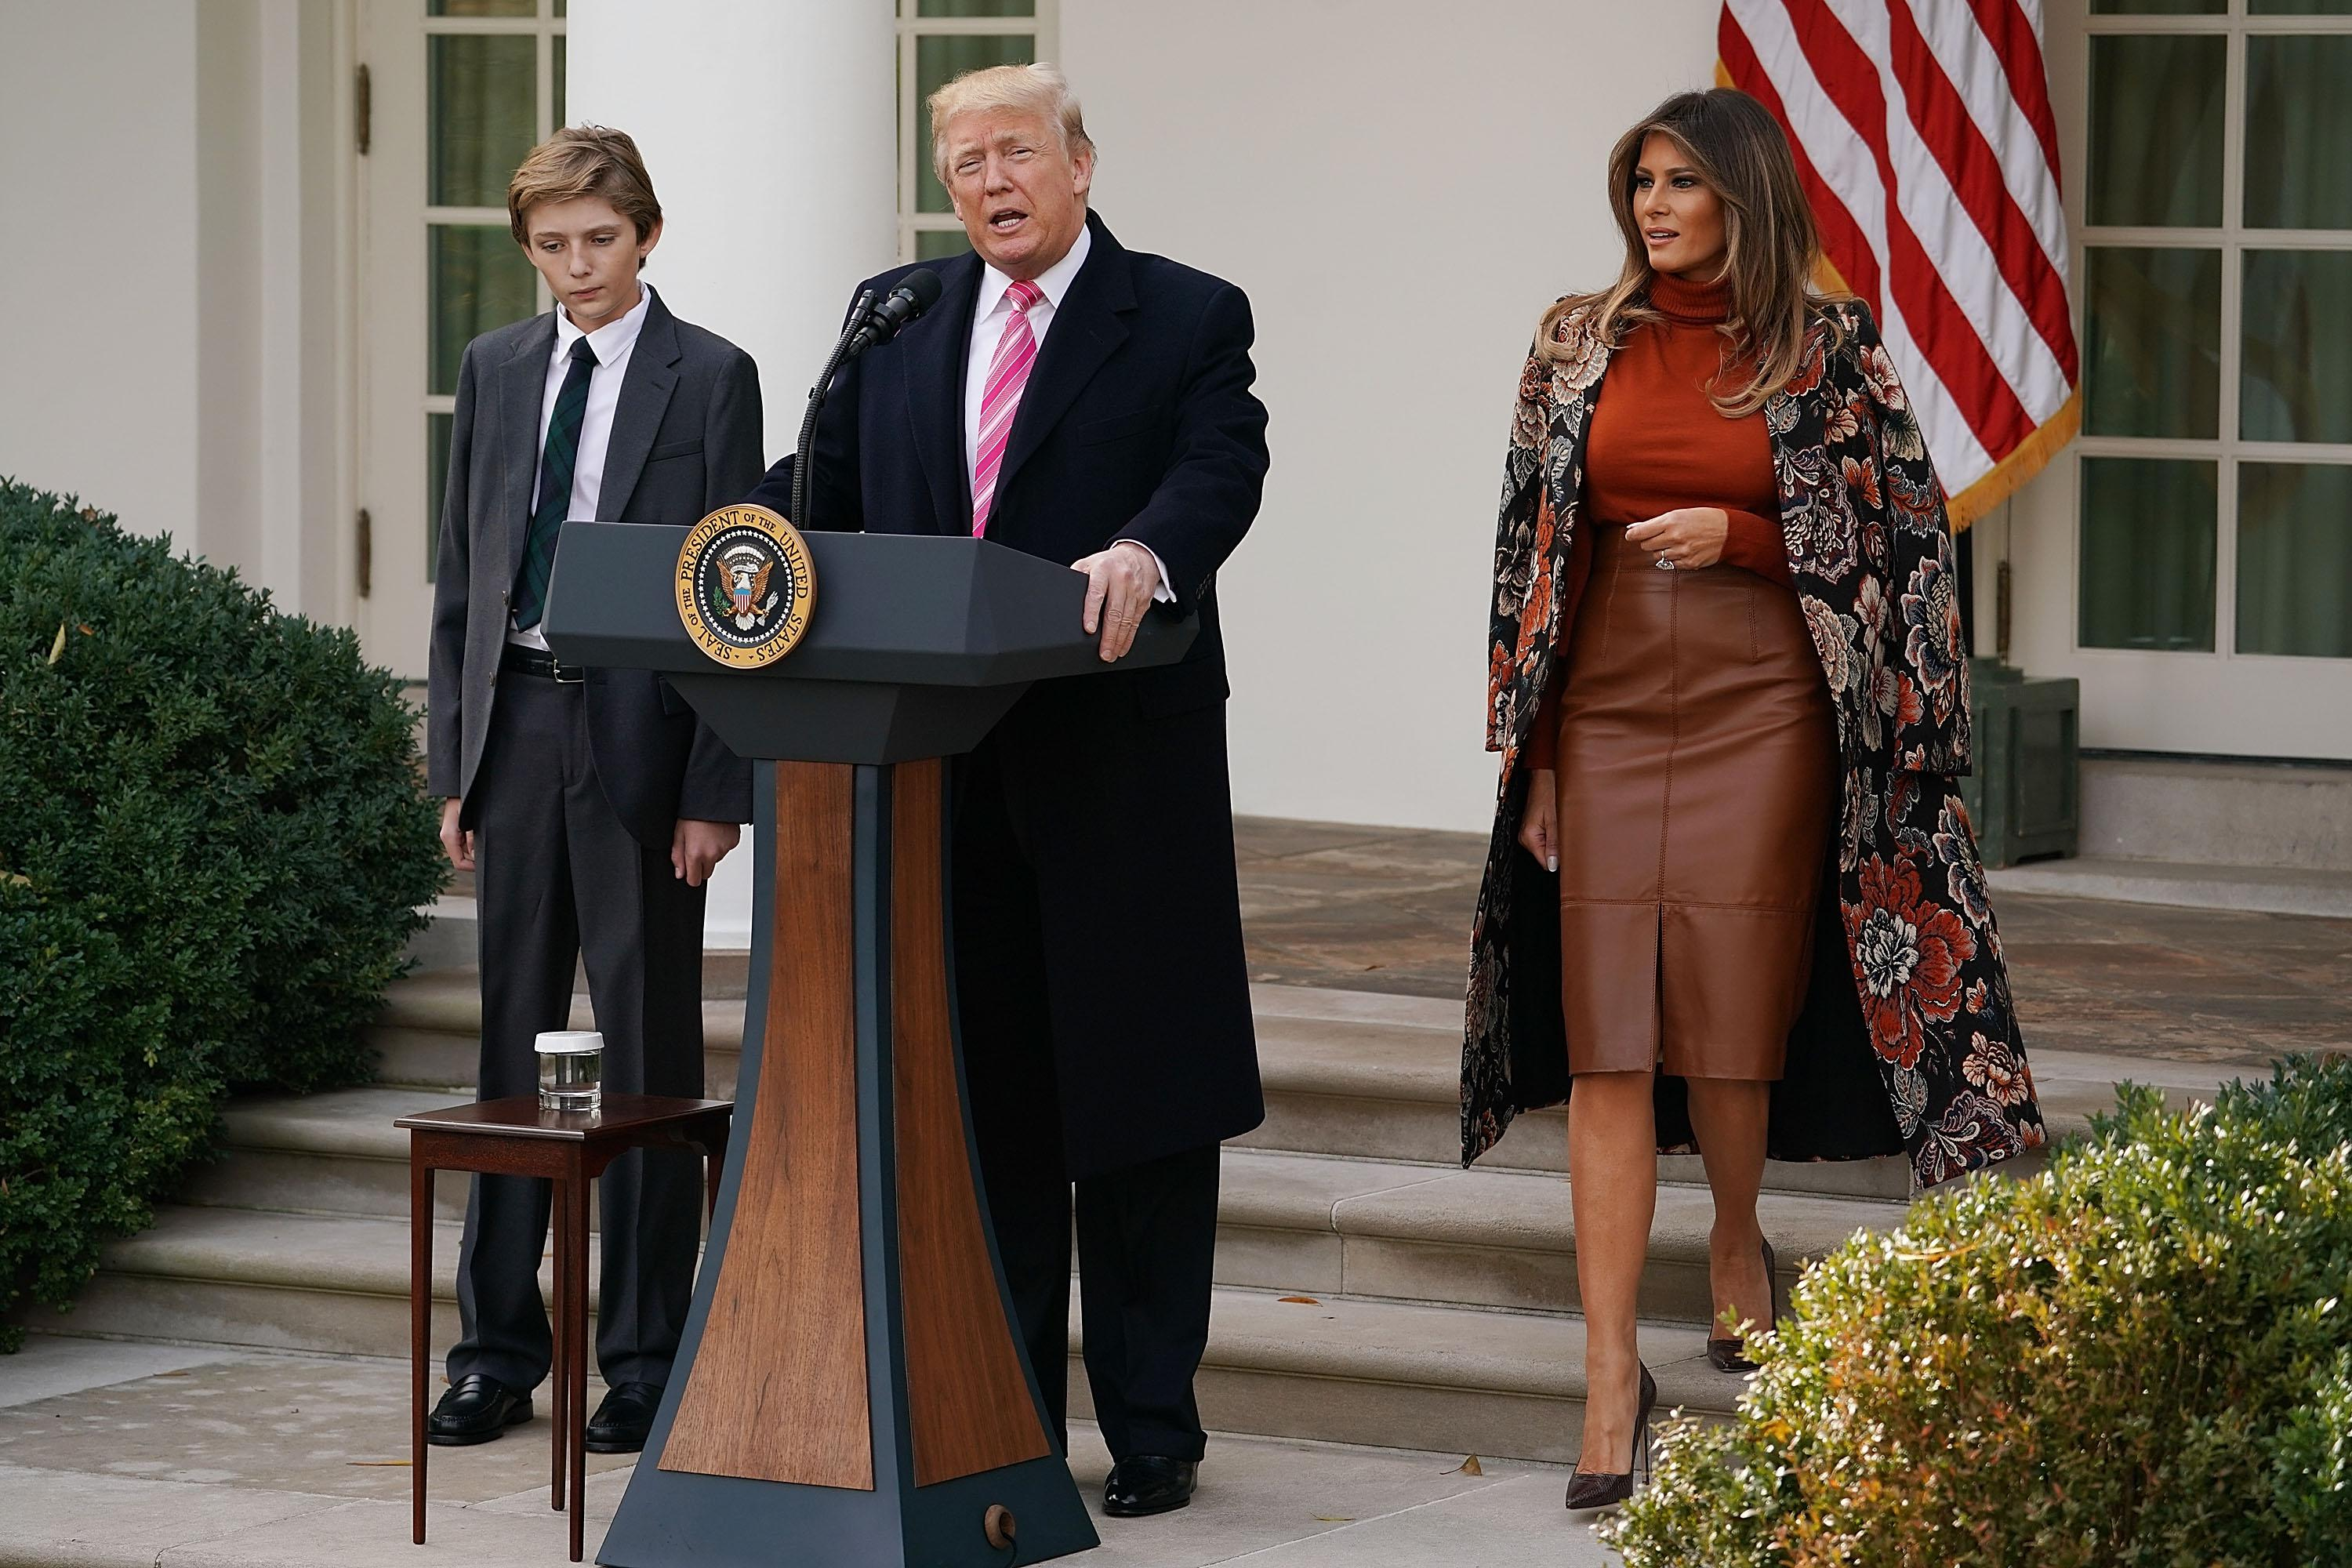 WASHINGTON, DC - NOVEMBER 21:  U.S. President Donald Trump delivers remarks with his son Barron Trump and first lady Melania Trump before pardoning the National Thanksgiving Turkey in the Rose Garden at the White House November 21, 2017 in Washington, DC. Following the presidential pardon, 'Drumstick,' the 40-pound White Holland breed which was raised by Turkey Federation Chairman Carl Wittenburg in Minnesota, will then reside at his new home, 'Gobbler's Rest,' at Virginia Tech.  (Photo by Chip Somodevilla/Getty Images)